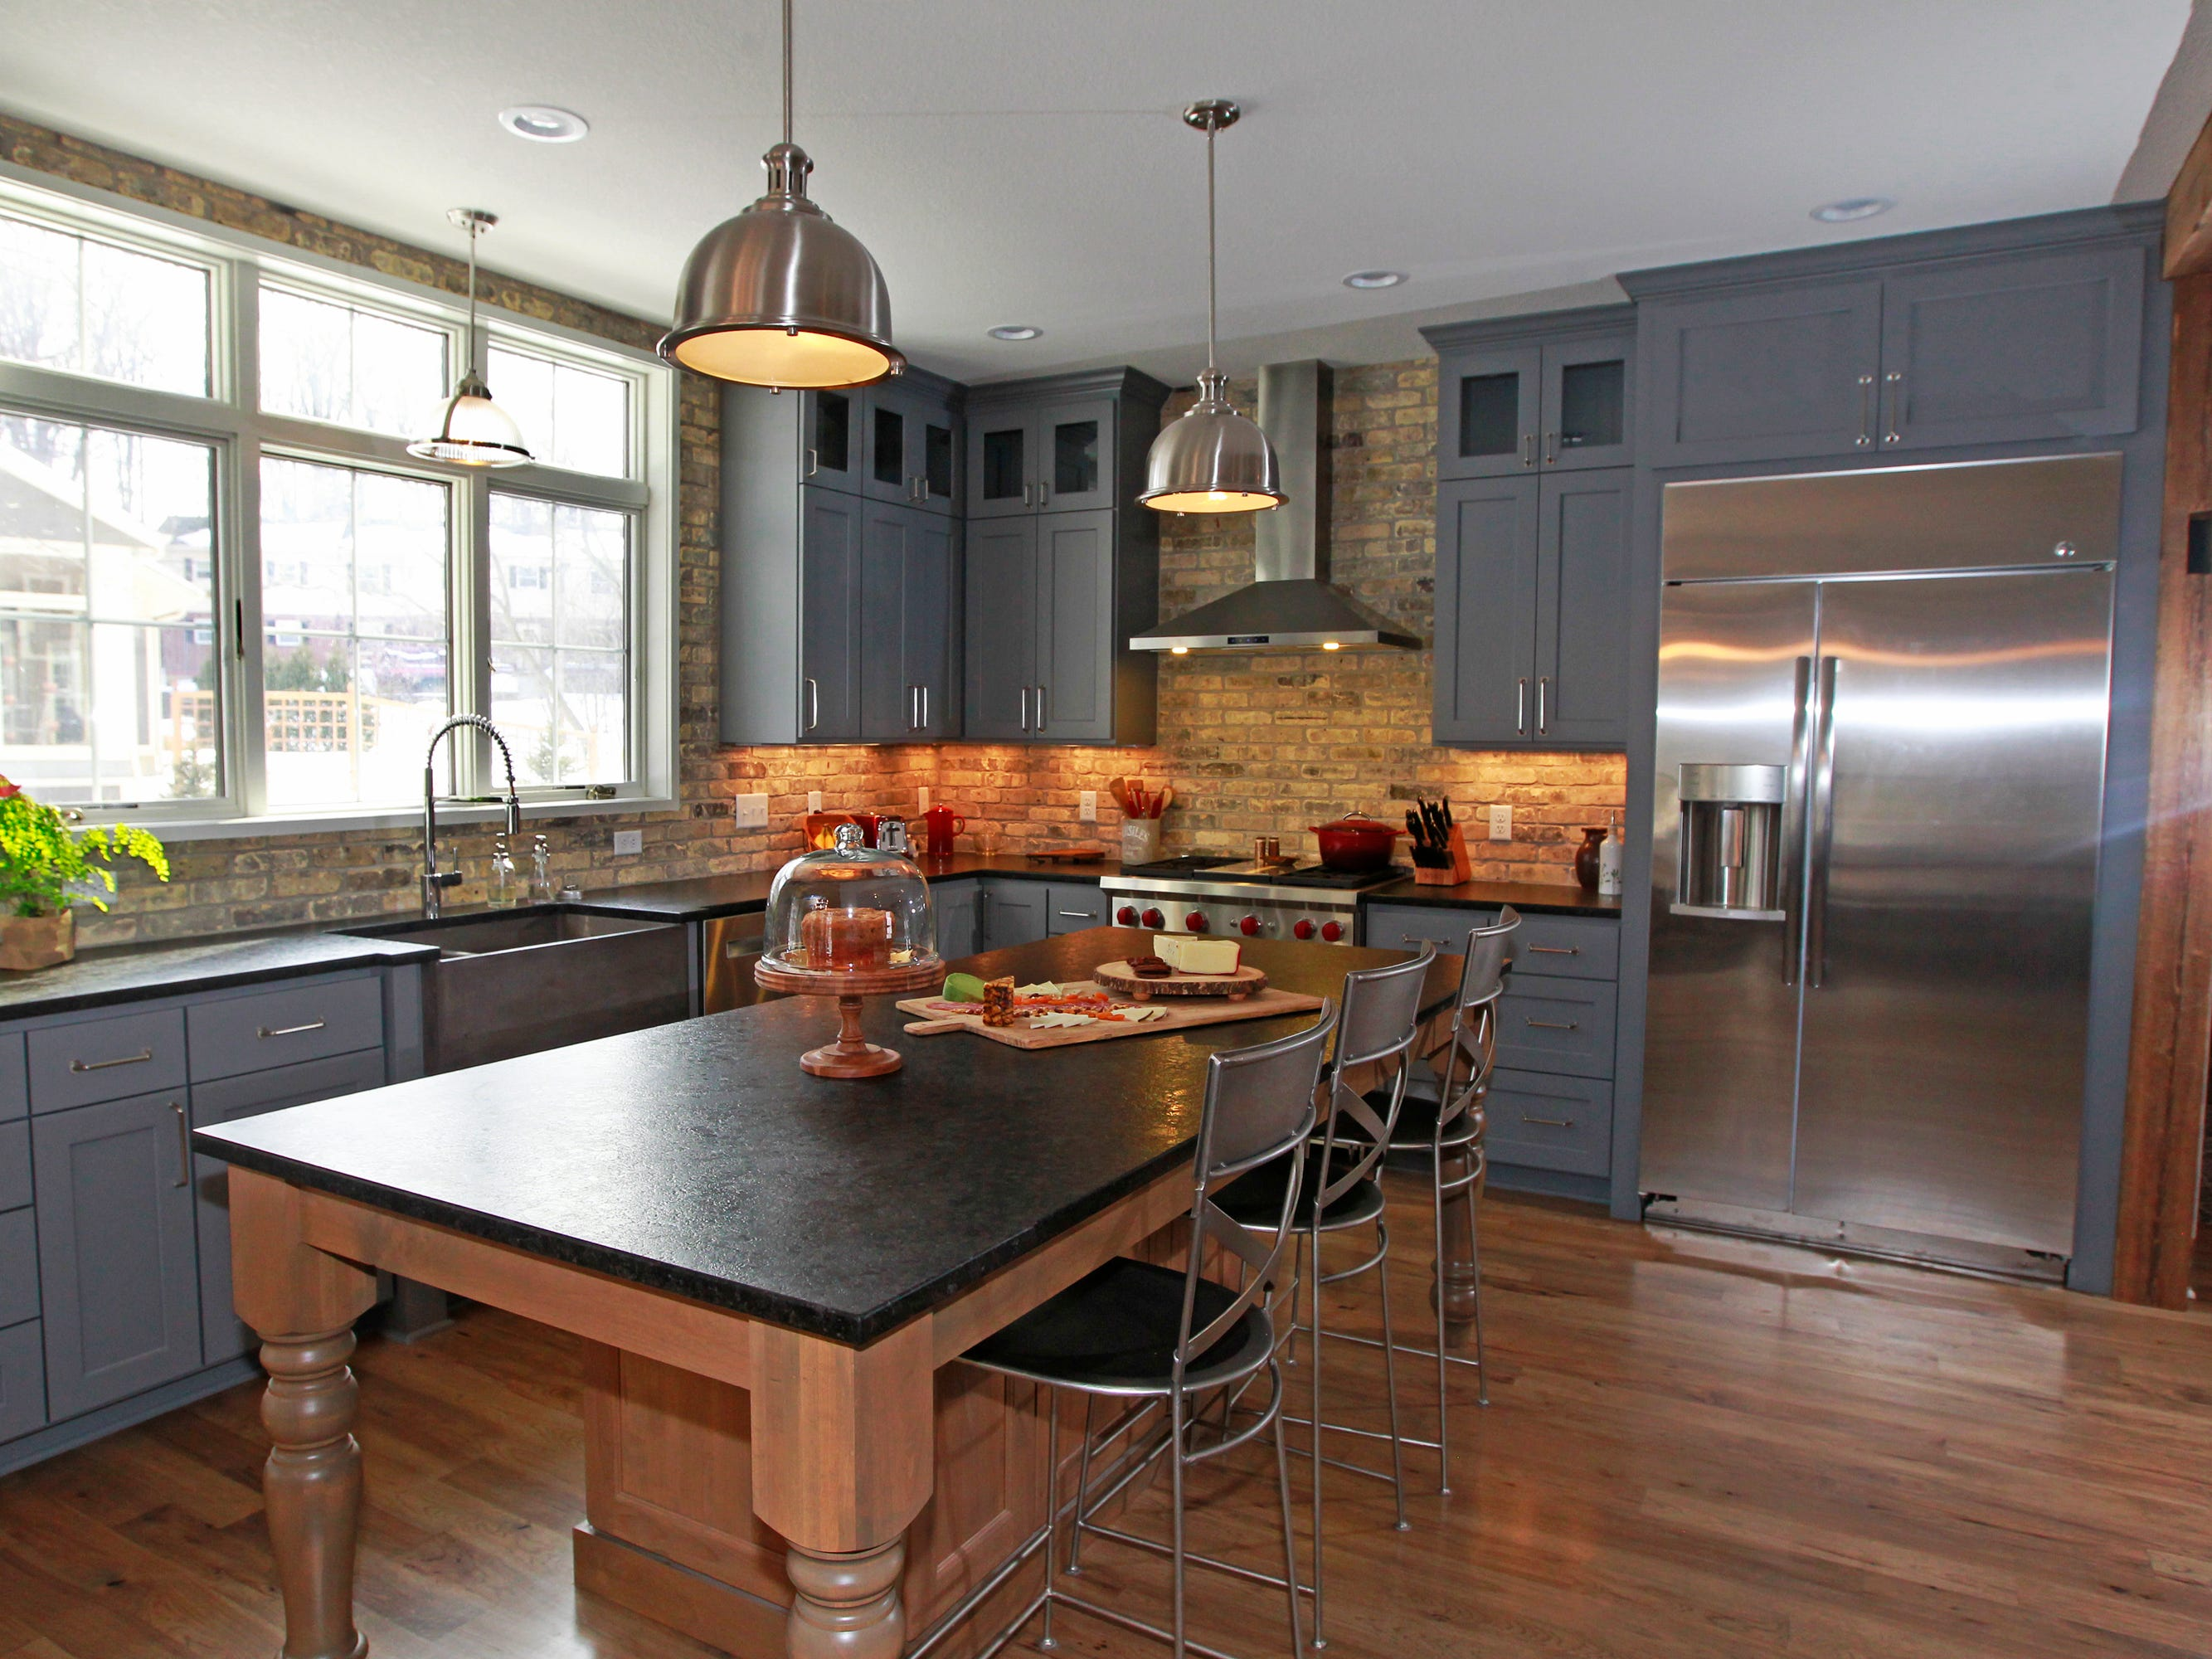 The Goransons' kitchen has reclaimed Cream City bricks, a leathered granite island, large picture window and recess and pendant lighting fixtures.